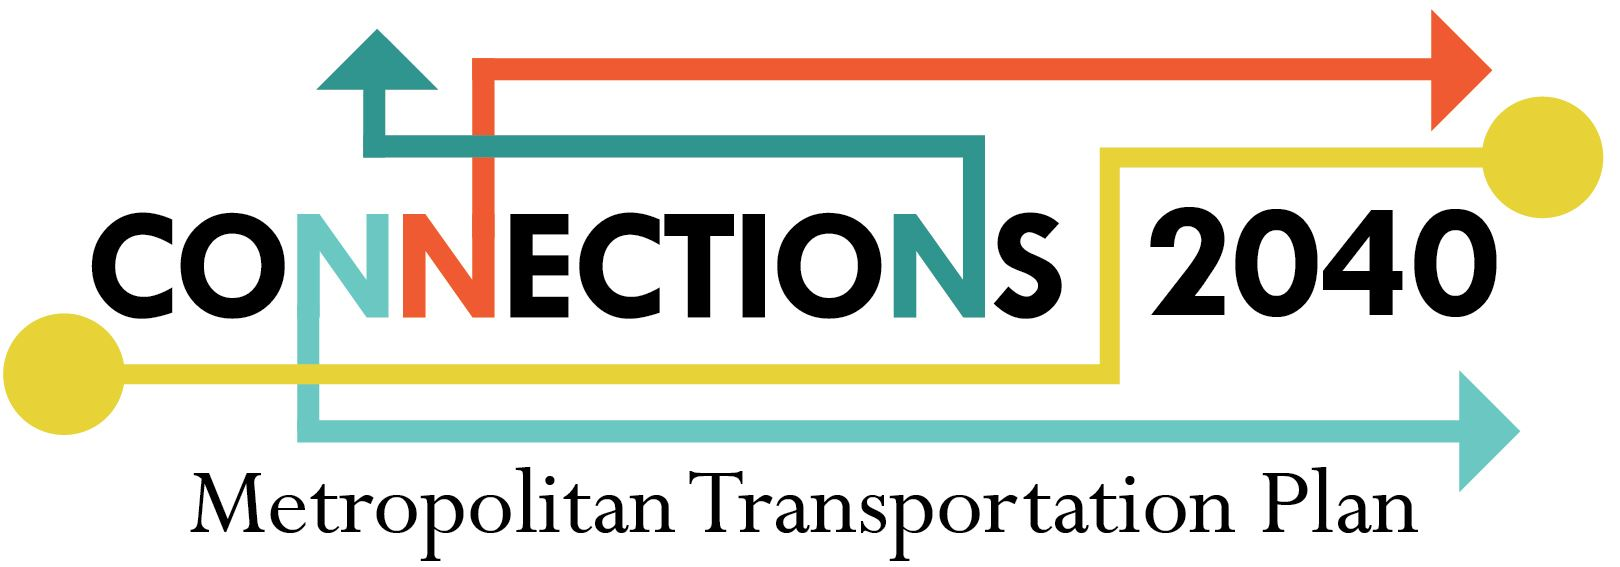 Connections 2040 Logo